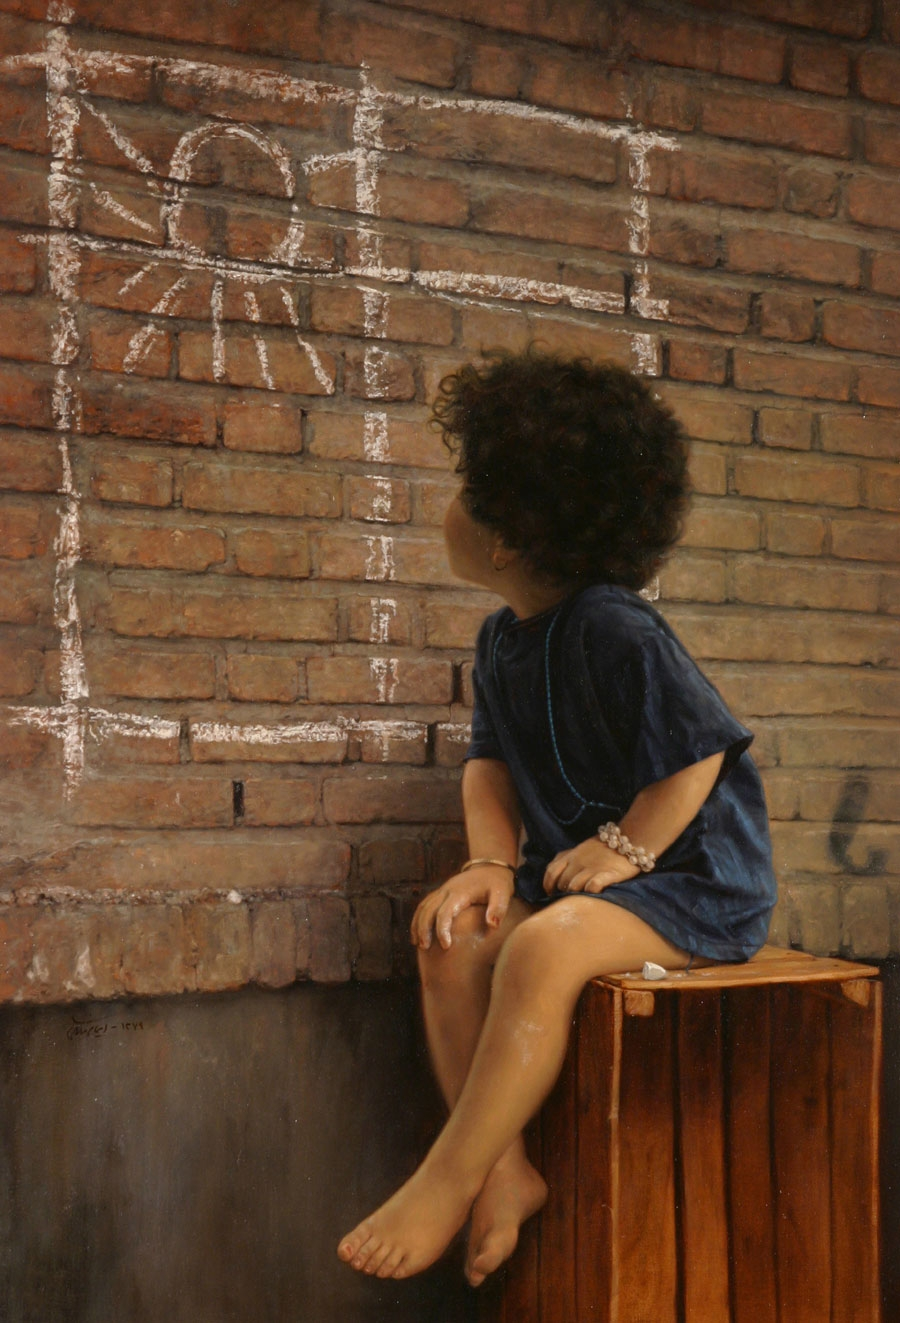 05-Wish-Iman-Maleki-Realistic-Paintings-that-Portray-Intense-Expressions-www-designstack-co